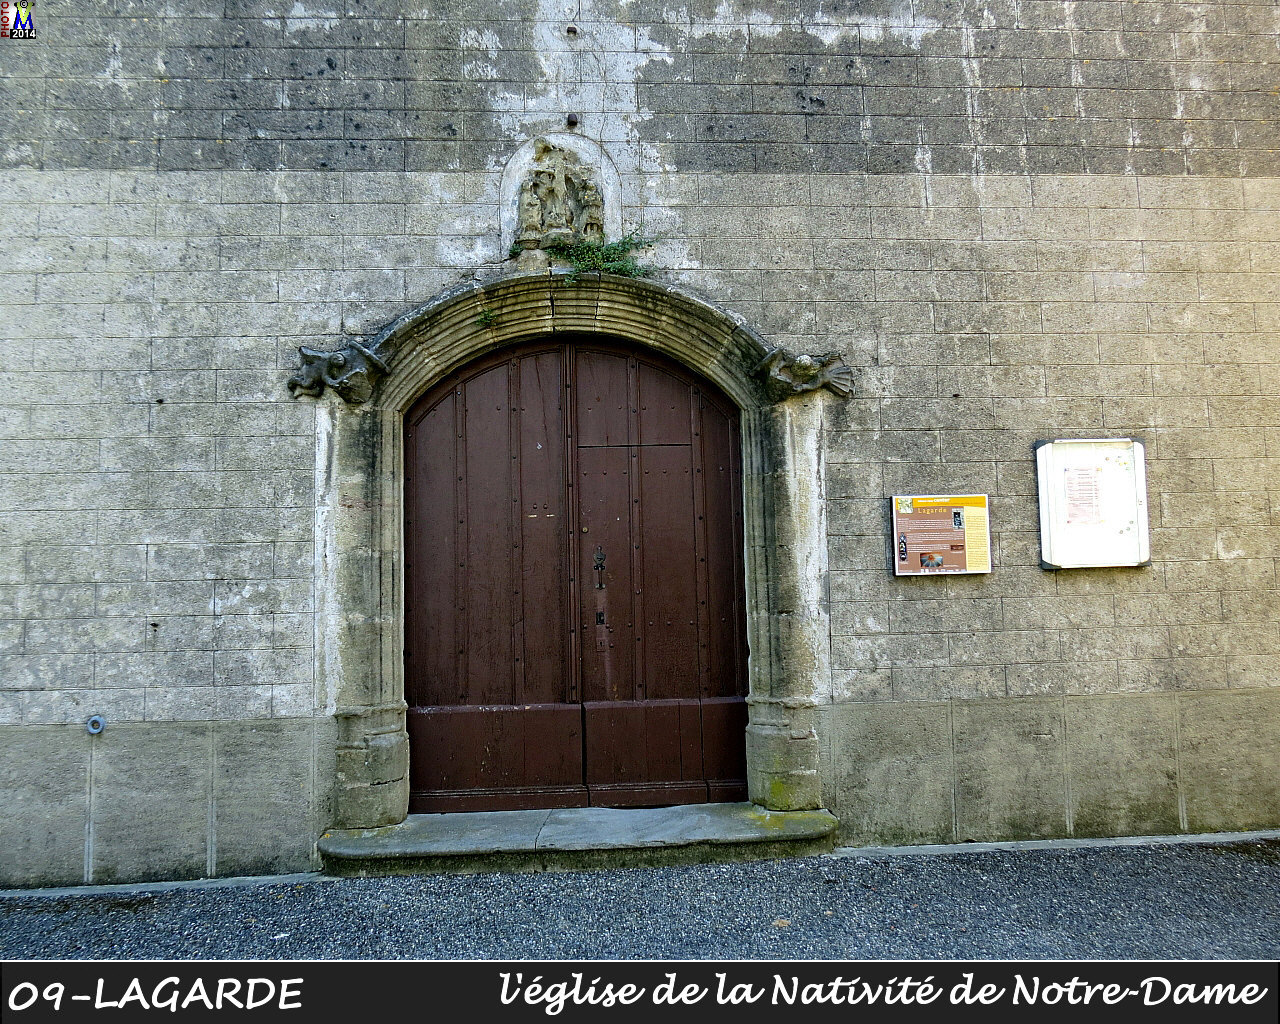 09LAGARDE_eglise_106.jpg